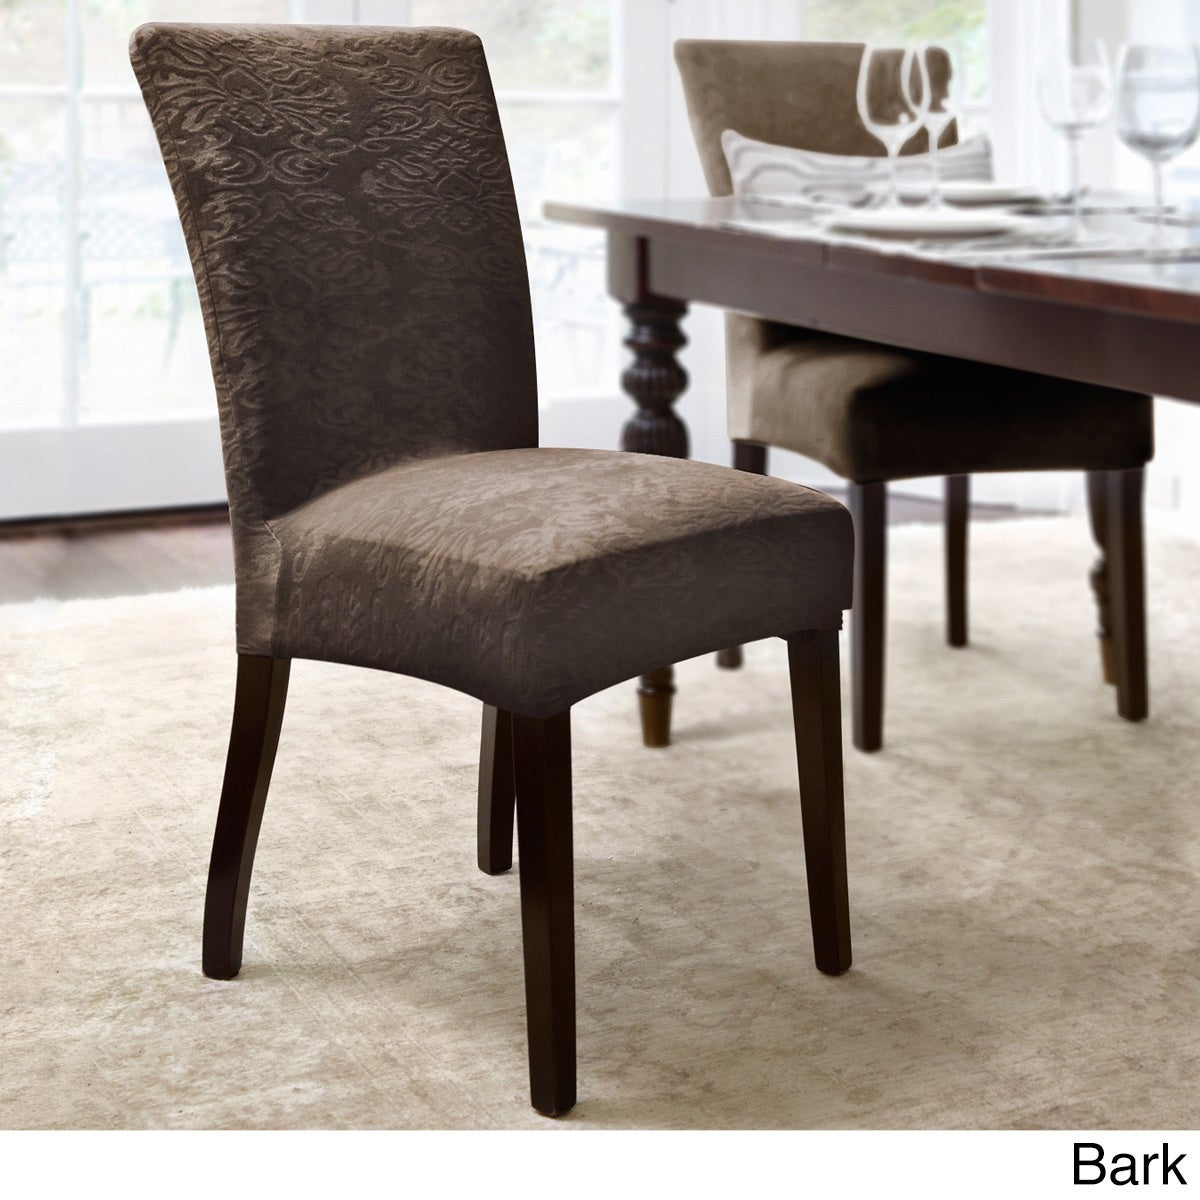 suede home free shipping slipcovers tall today of set relaxed chair smooth tailor garden product dining overstock slipcover fit